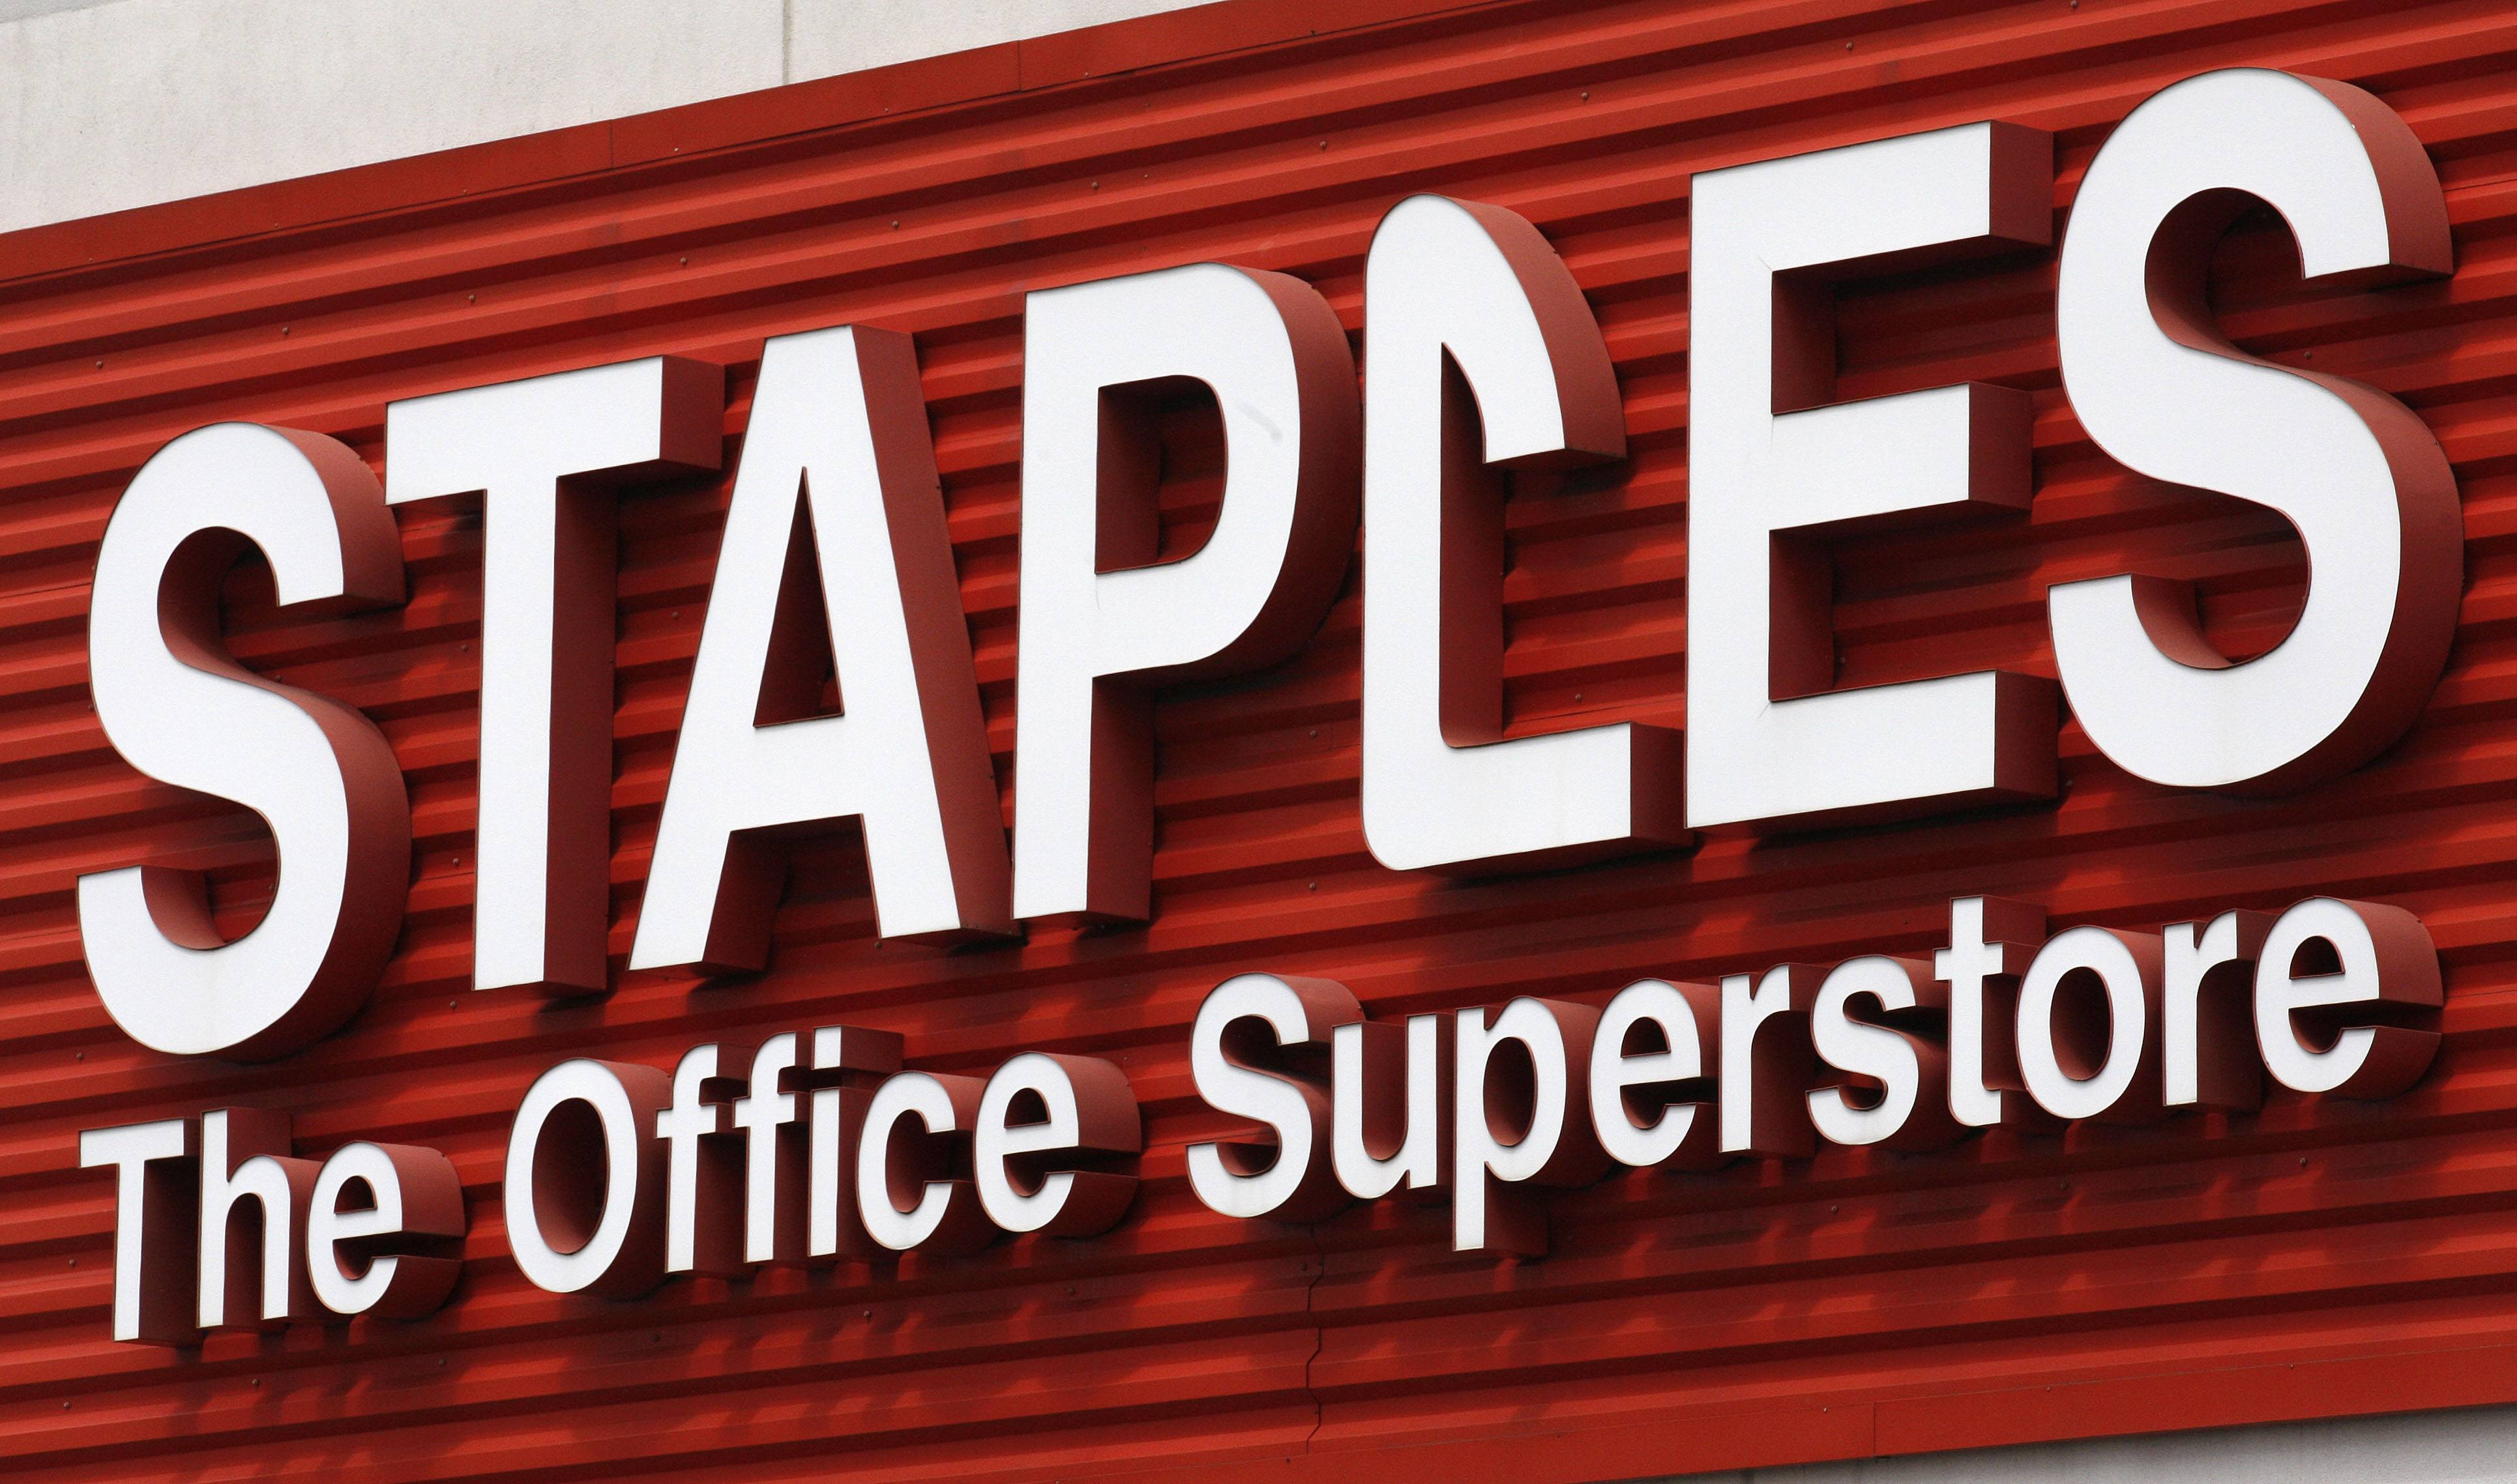 Staples will close 225 stores by the end of next year and the office-supply retailer is initiating a plan to save about $500 million annually by 2015,